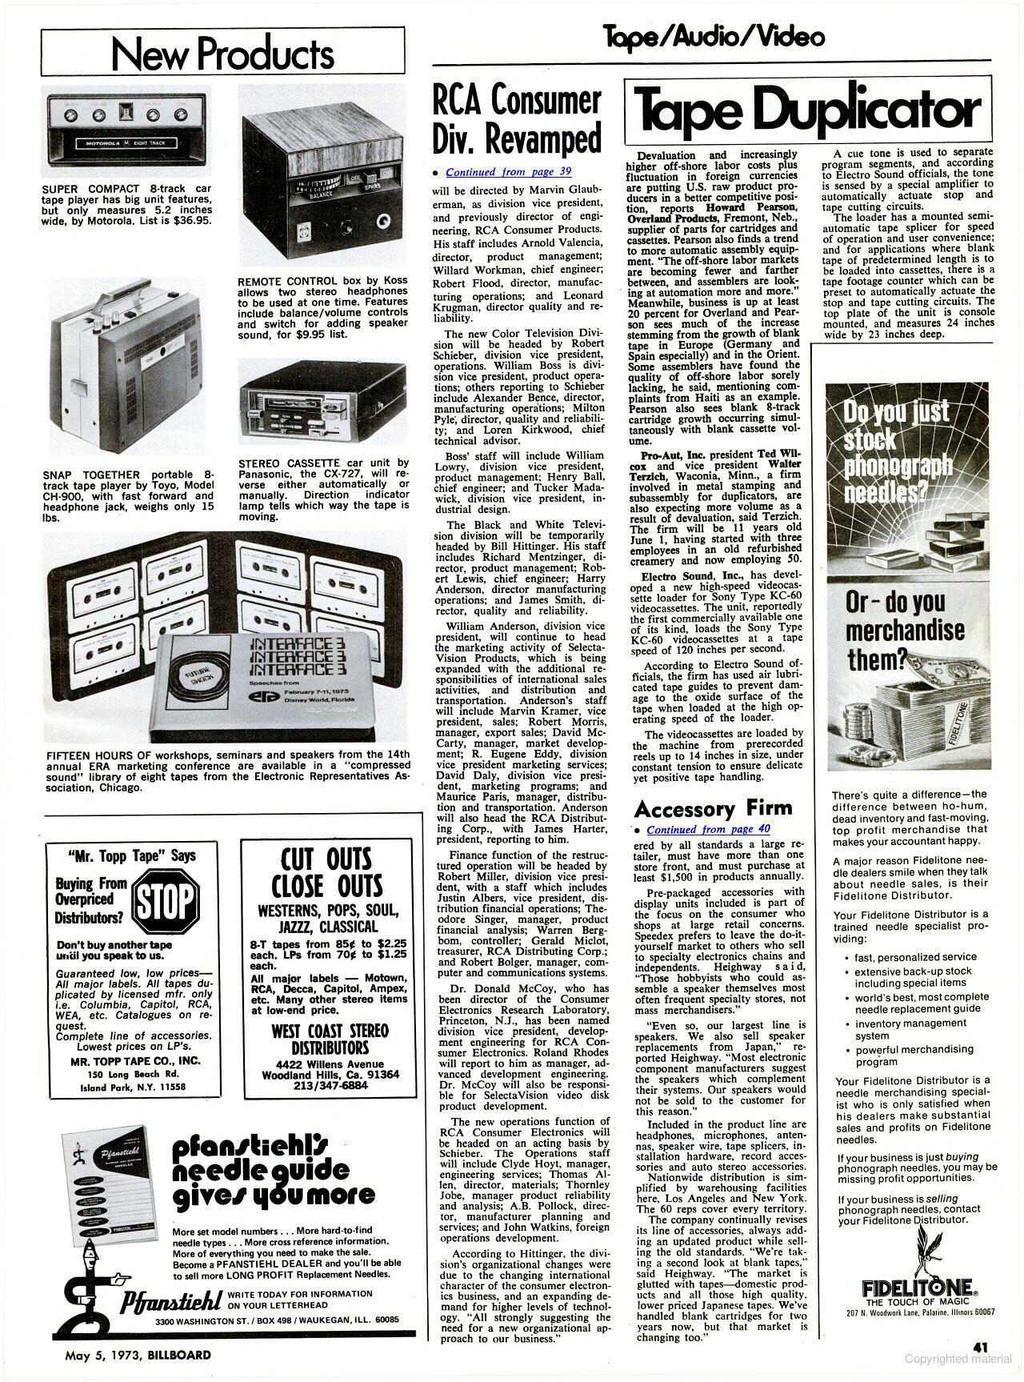 Newspaper Isclauz6 Da Black Gospel Deserves Aid Stan Lewis Pdf Snap Circuits Sound Light Combo By Elenco On Barstons Childs Play New Products Tope Audio Video Super Compact 8 Track Car Tape Player Has